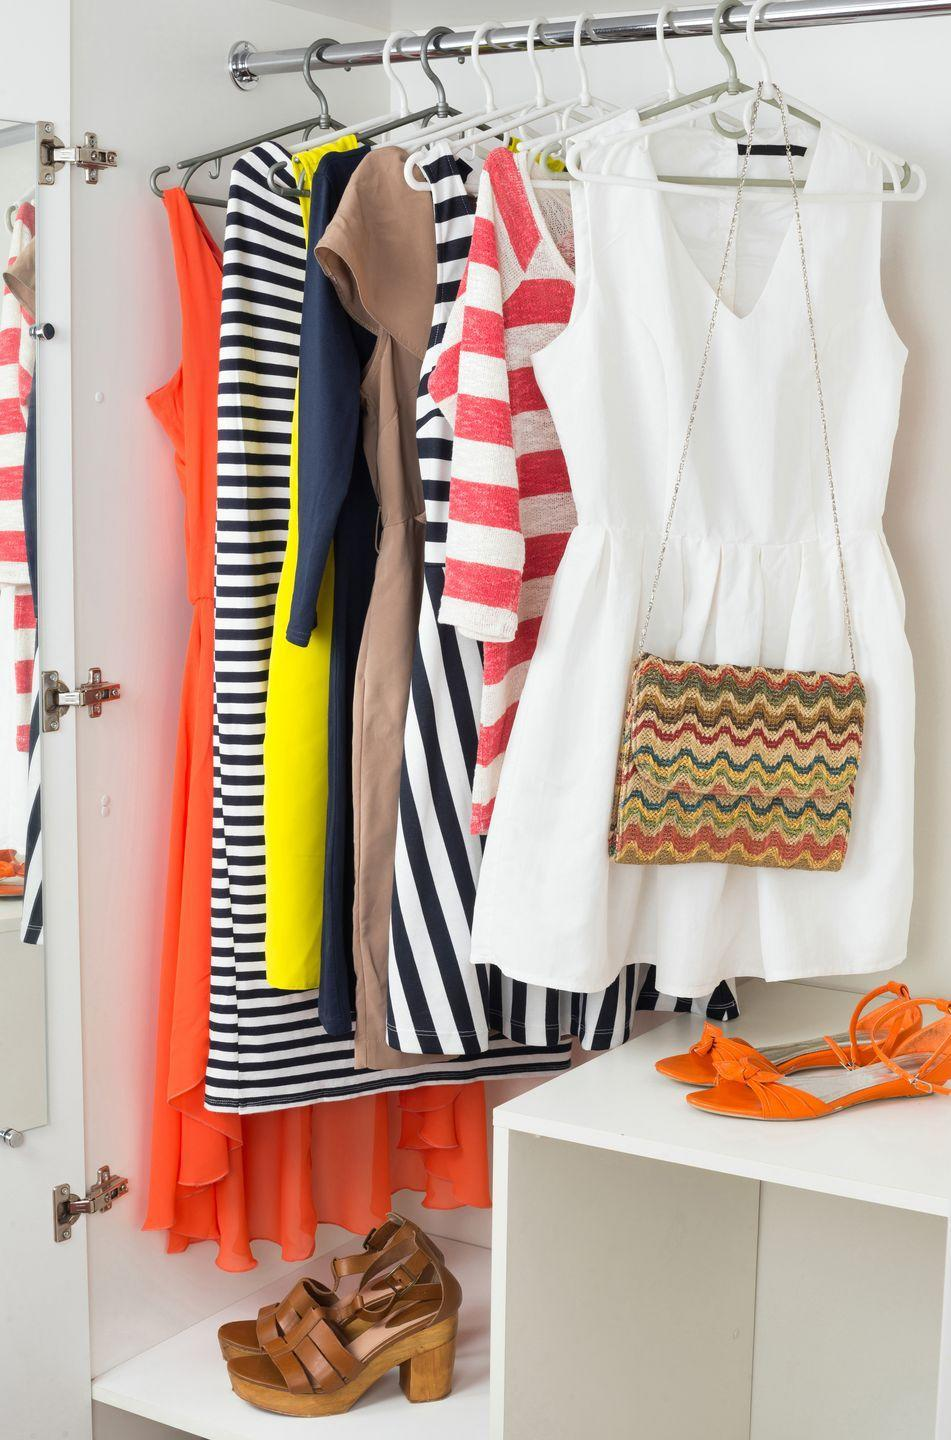 """<p>Take a note from the fashion experts to make your mornings <em>so </em>much easier. """"Take tried-and-true outfits and hang the items together — shirts, pants, and accessories,"""" suggests Stacy London, former host of <em>What Not to Wear</em>. By placing clothes and their coordinating accessories on streamlined velvet hangers, you'll be able to fit more in your closet, no matter the size.</p><p><a class=""""link rapid-noclick-resp"""" href=""""https://www.amazon.com/AmazonBasics-Velvet-Suit-Hangers-50-Pack/dp/B00FXNAAW2?tag=syn-yahoo-20&ascsubtag=%5Bartid%7C10063.g.36459111%5Bsrc%7Cyahoo-us"""" rel=""""nofollow noopener"""" target=""""_blank"""" data-ylk=""""slk:SHOP HANGERS"""">SHOP HANGERS</a></p><p><strong>RELATED:</strong> <a href=""""https://www.goodhousekeeping.com/home/organizing/g2171/diy-closet-organizers/"""" rel=""""nofollow noopener"""" target=""""_blank"""" data-ylk=""""slk:20+ Genius Tips for Your Most Organized Closet Ever"""" class=""""link rapid-noclick-resp"""">20+ Genius Tips for Your Most Organized Closet Ever</a></p>"""